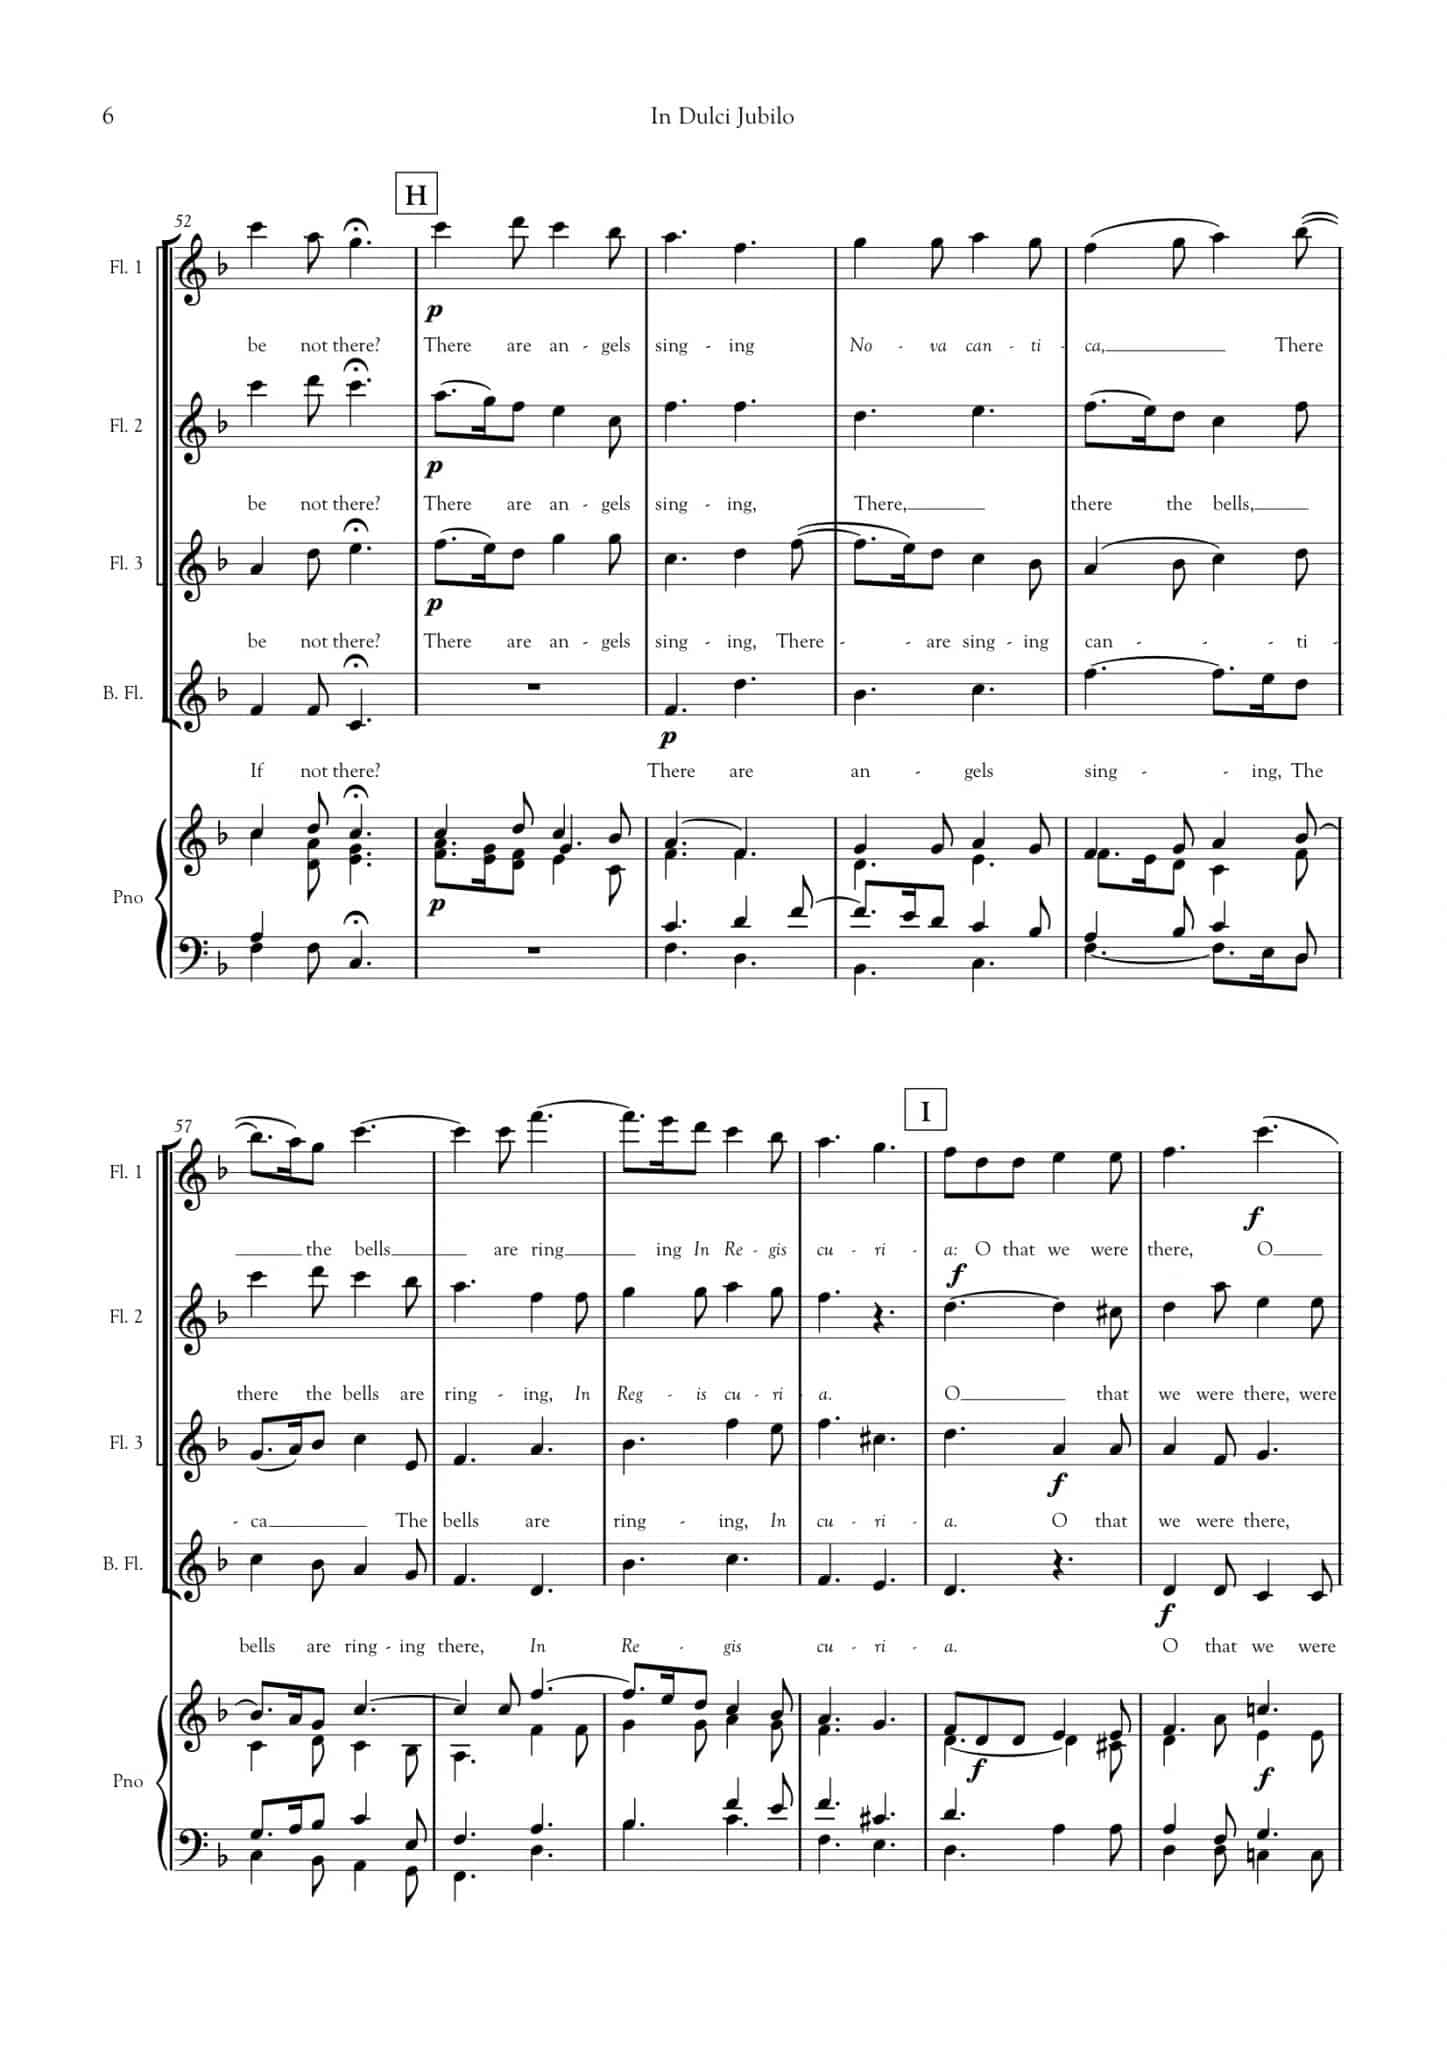 Simply Flute - In Dulci Jubilo - all parts_title sheet_no words copy_Part15